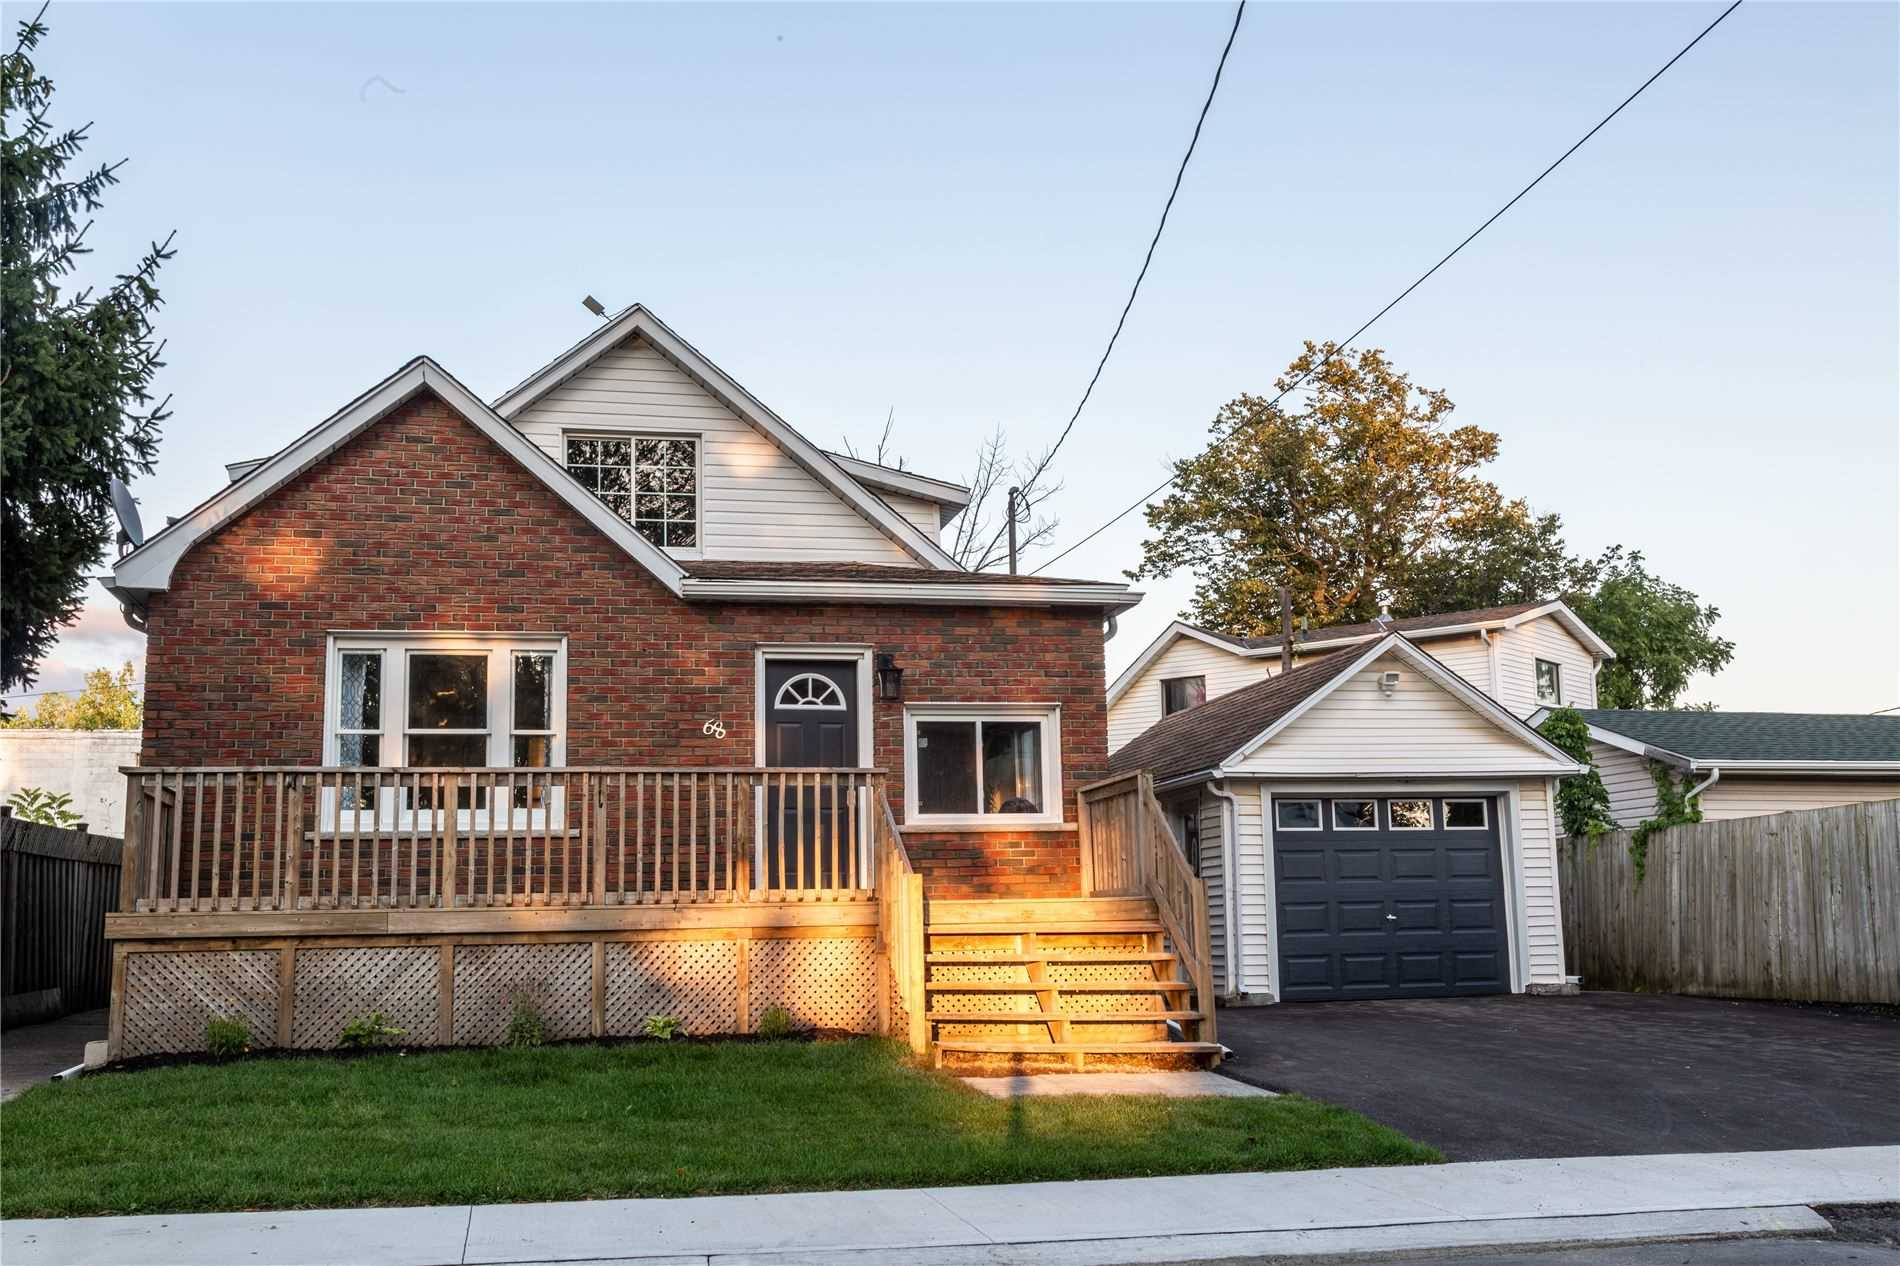 pictures of house for sale MLS: X4691413 located at 68 Patricia St W, Thorold L2V3W1